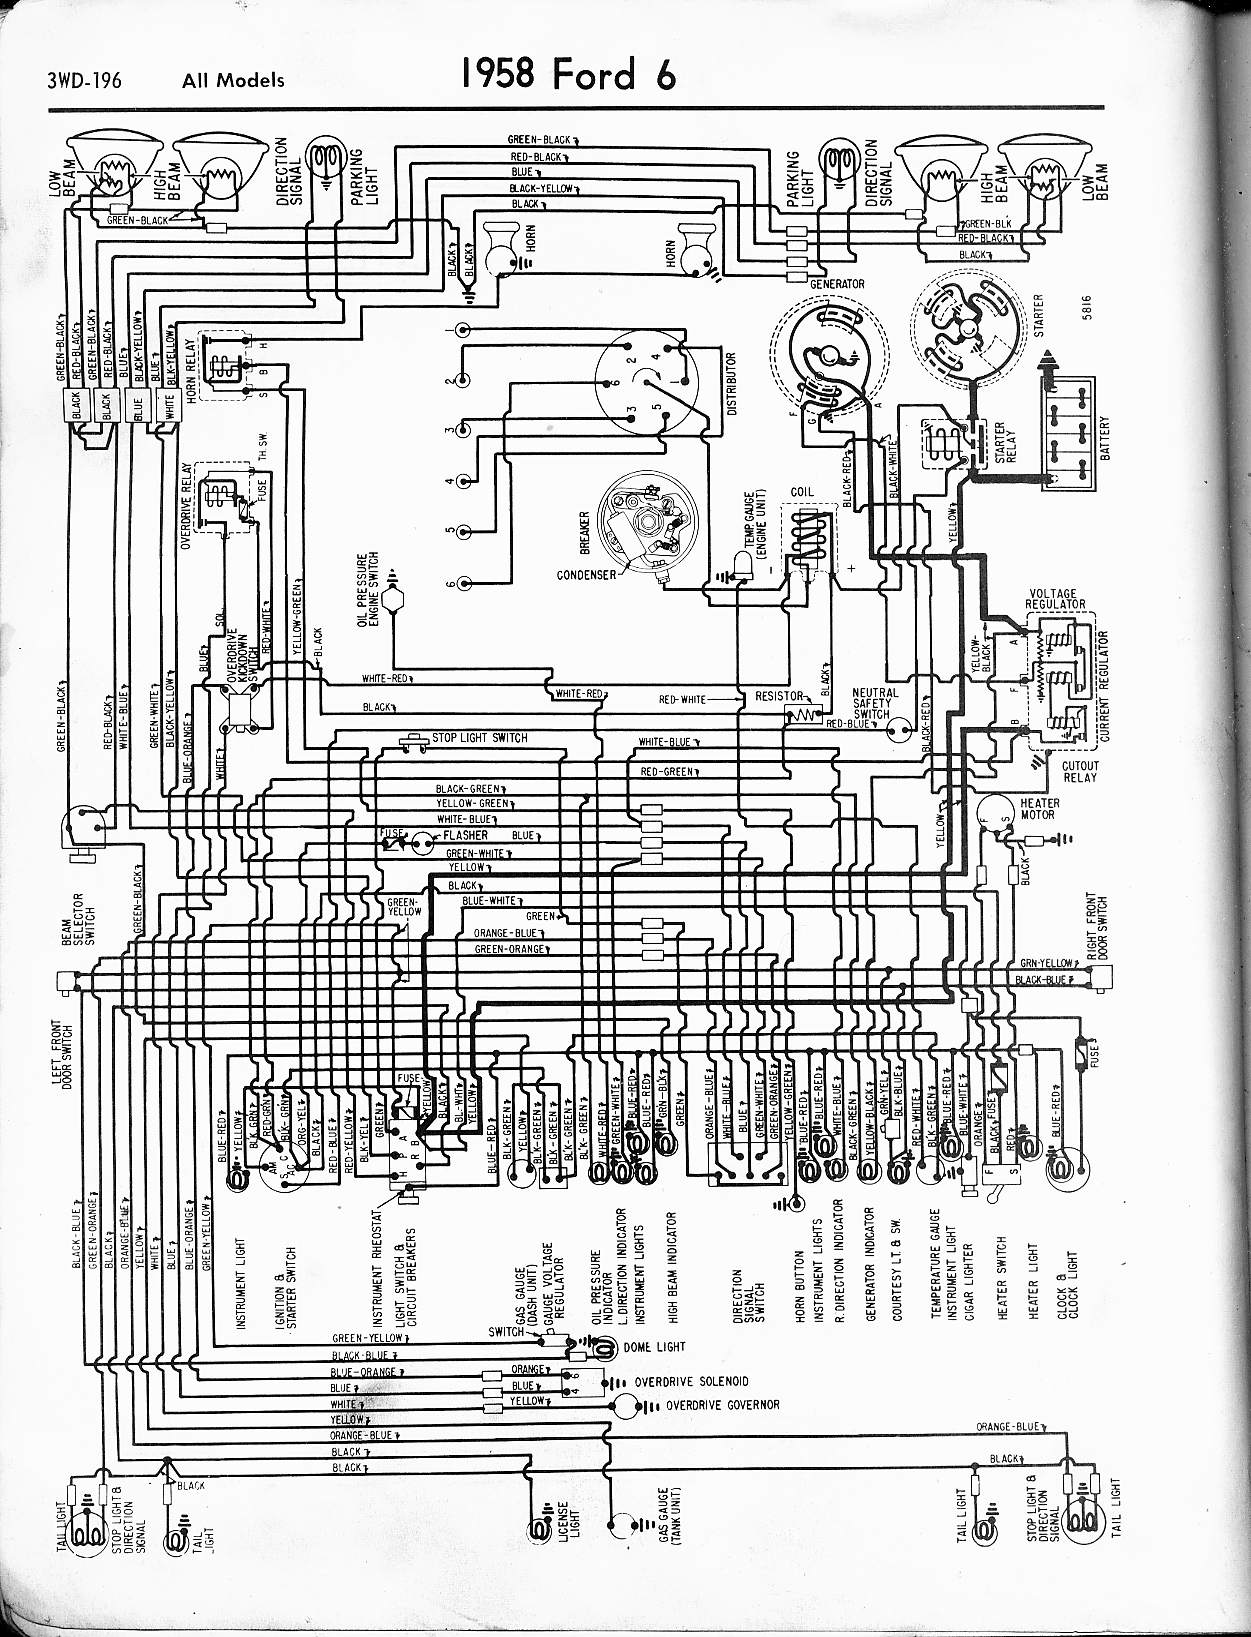 ford wiring schematics detailed schematics diagram rh lelandlutheran com ford  f650 wiring schematic ford f650 wiring